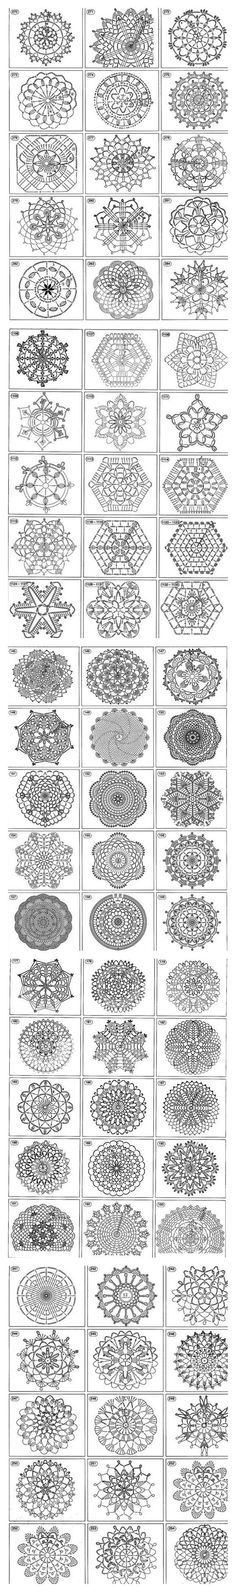 Over 1400 free crochet motif, afghan squares, coasters, snowflakes, doilies, triangles stitch chart diagram patterns. Great for baby blankets, afghans, table cloths, towel edging, Christmas. ornaments etc.